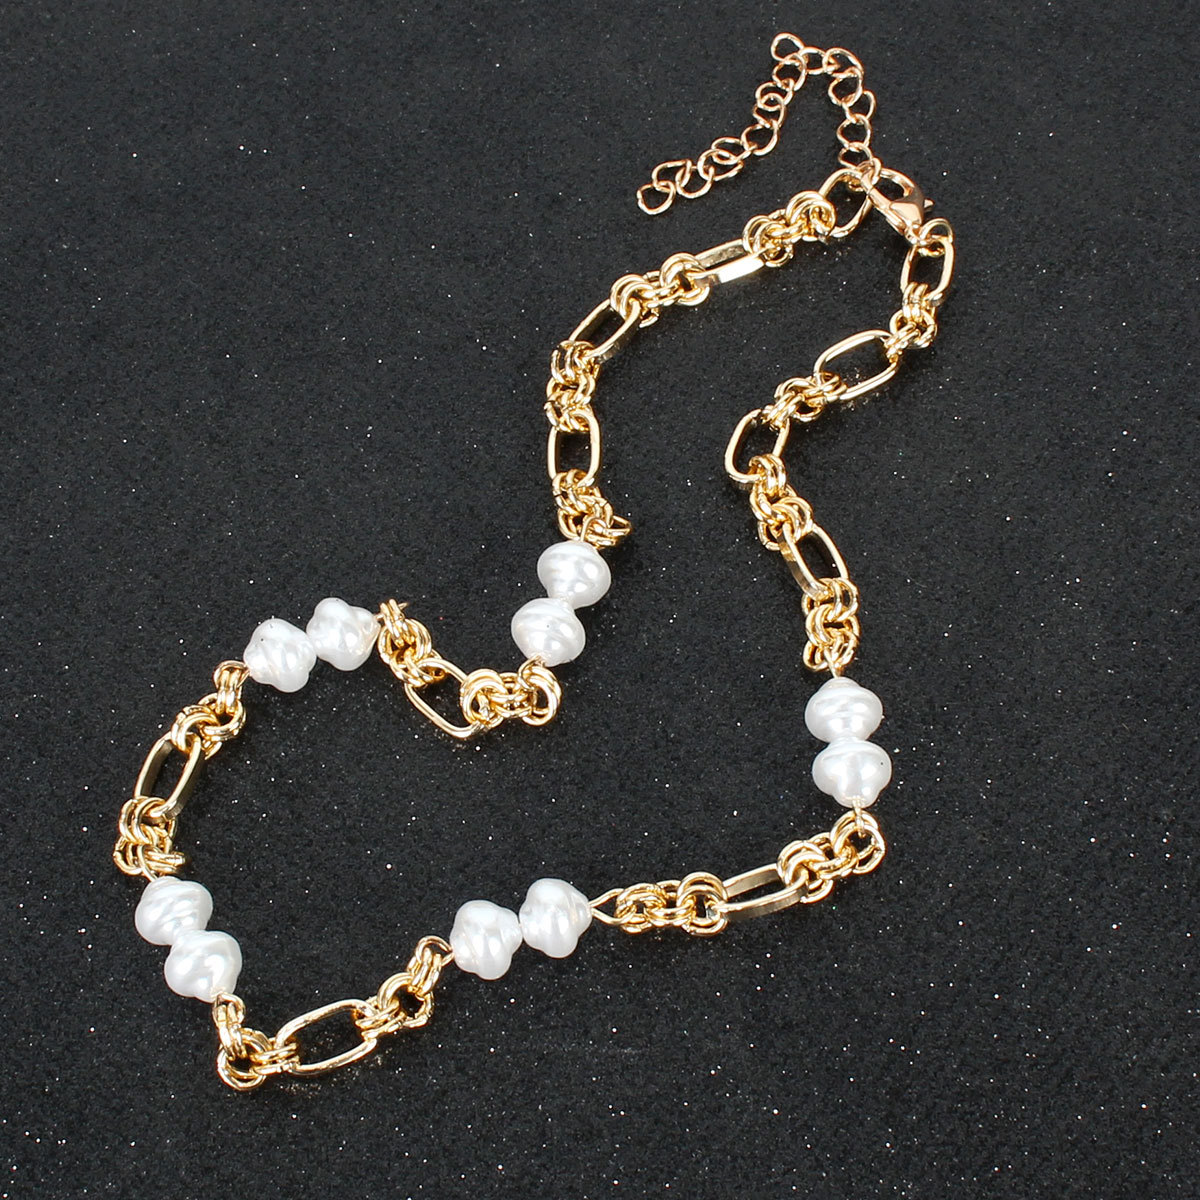 Imitation pearl choker metal necklace short necklace wholesale NHCT211613